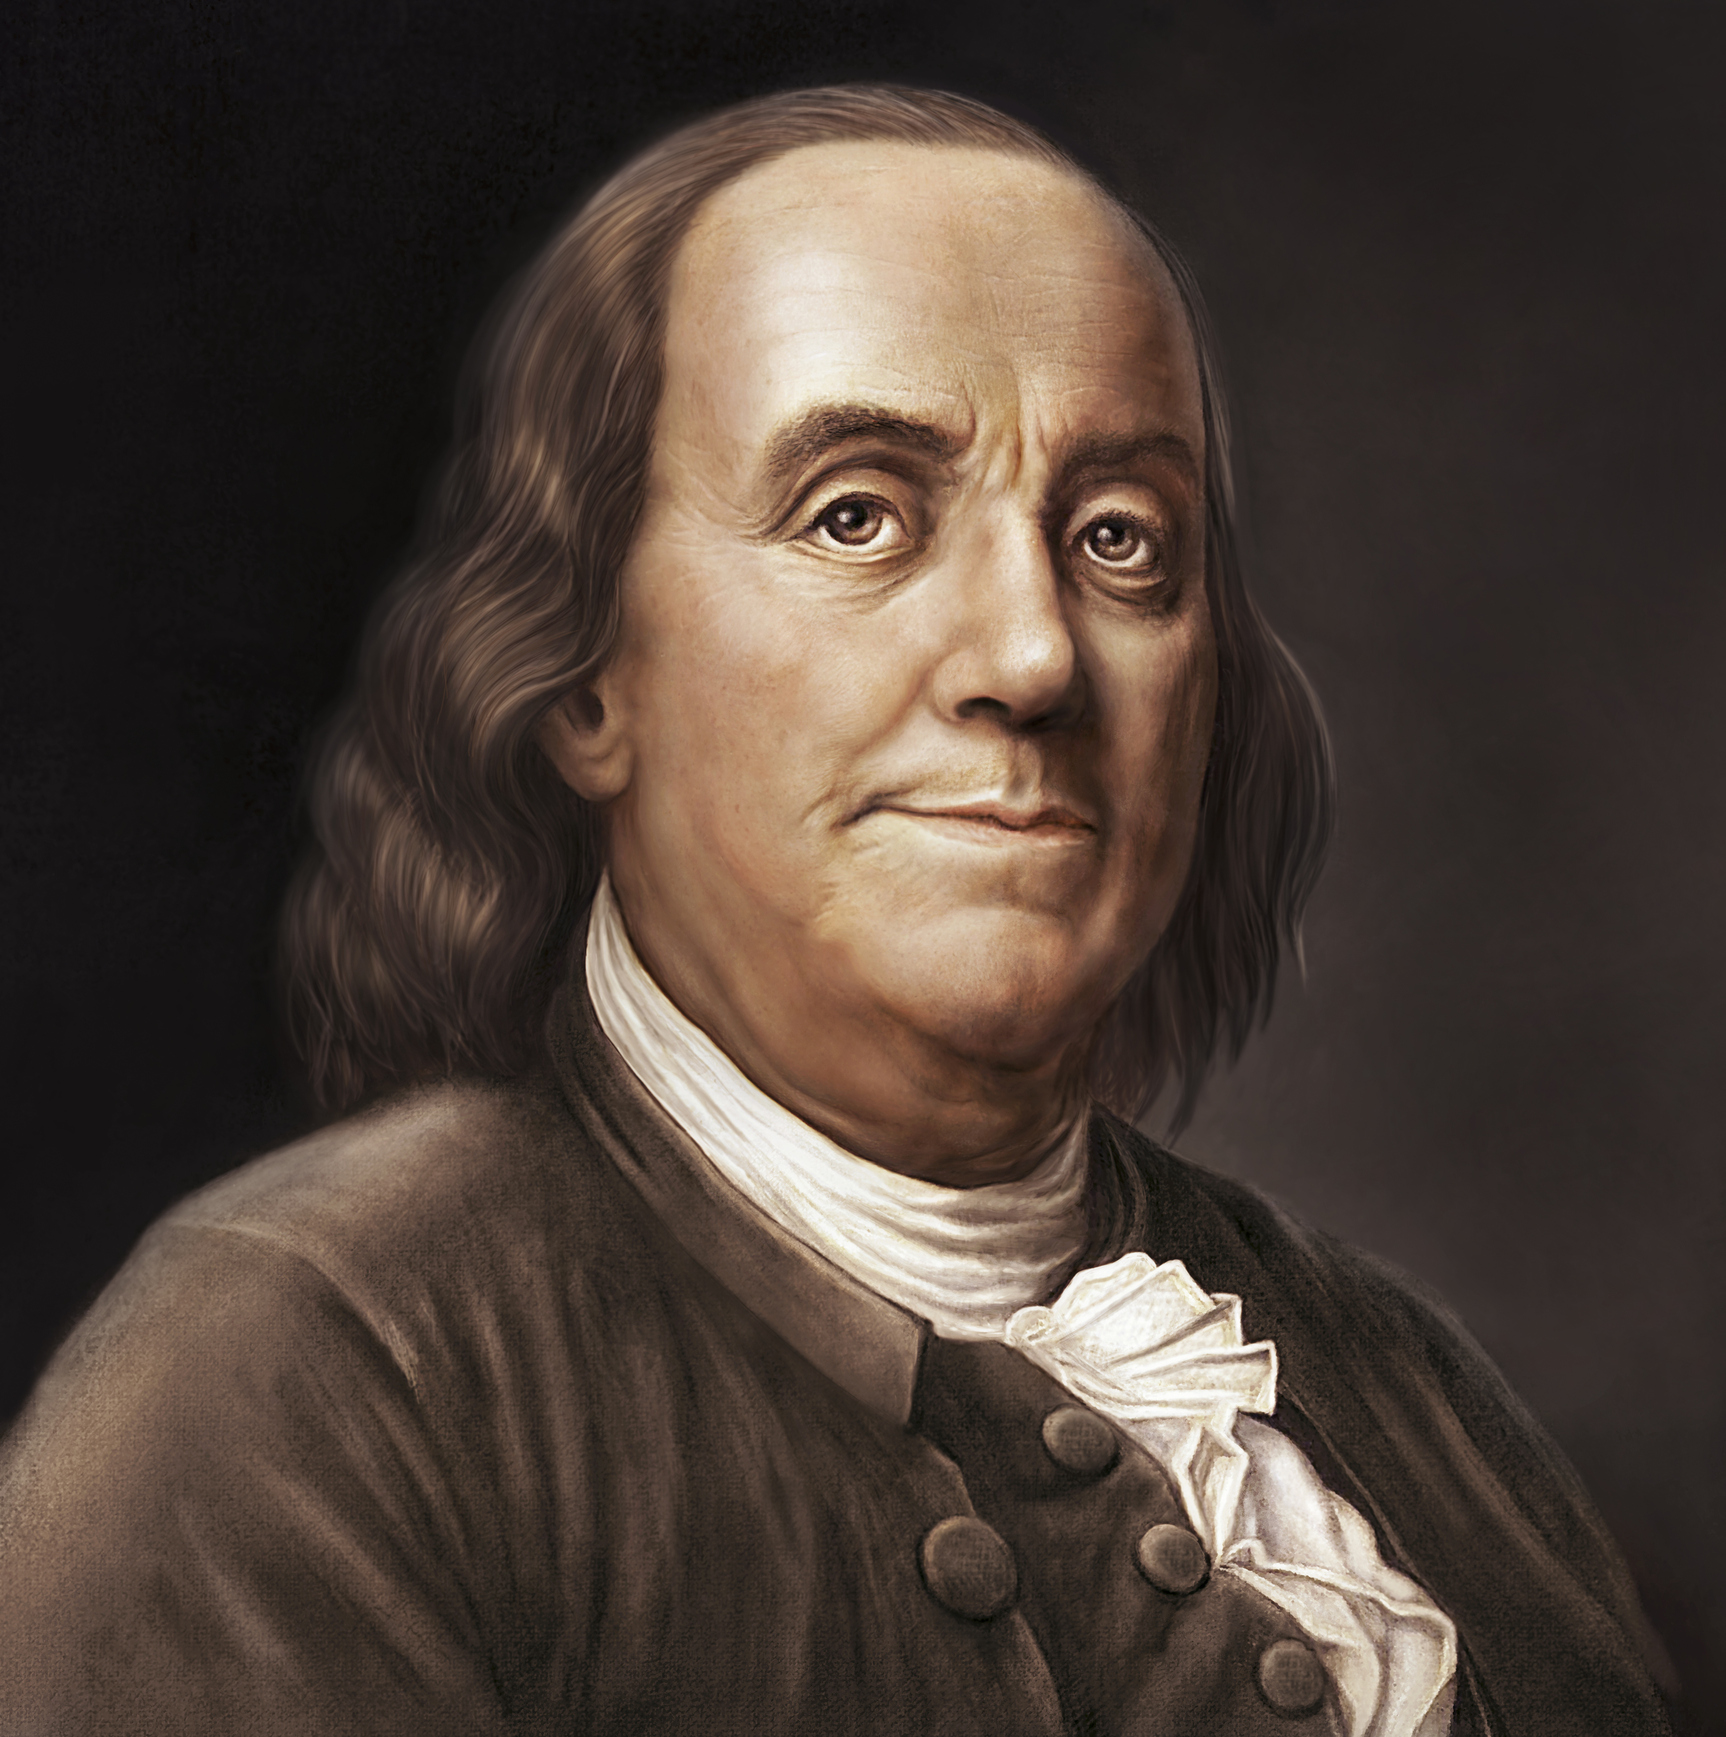 Original digital painting by Joe Cicak (submitter). Based on the well-known portrait of Ben Franklin on the US 100 bill. Painting mimics classic painting styles of the 18th century. This painting is fully released.See also my illustration of George Washington.